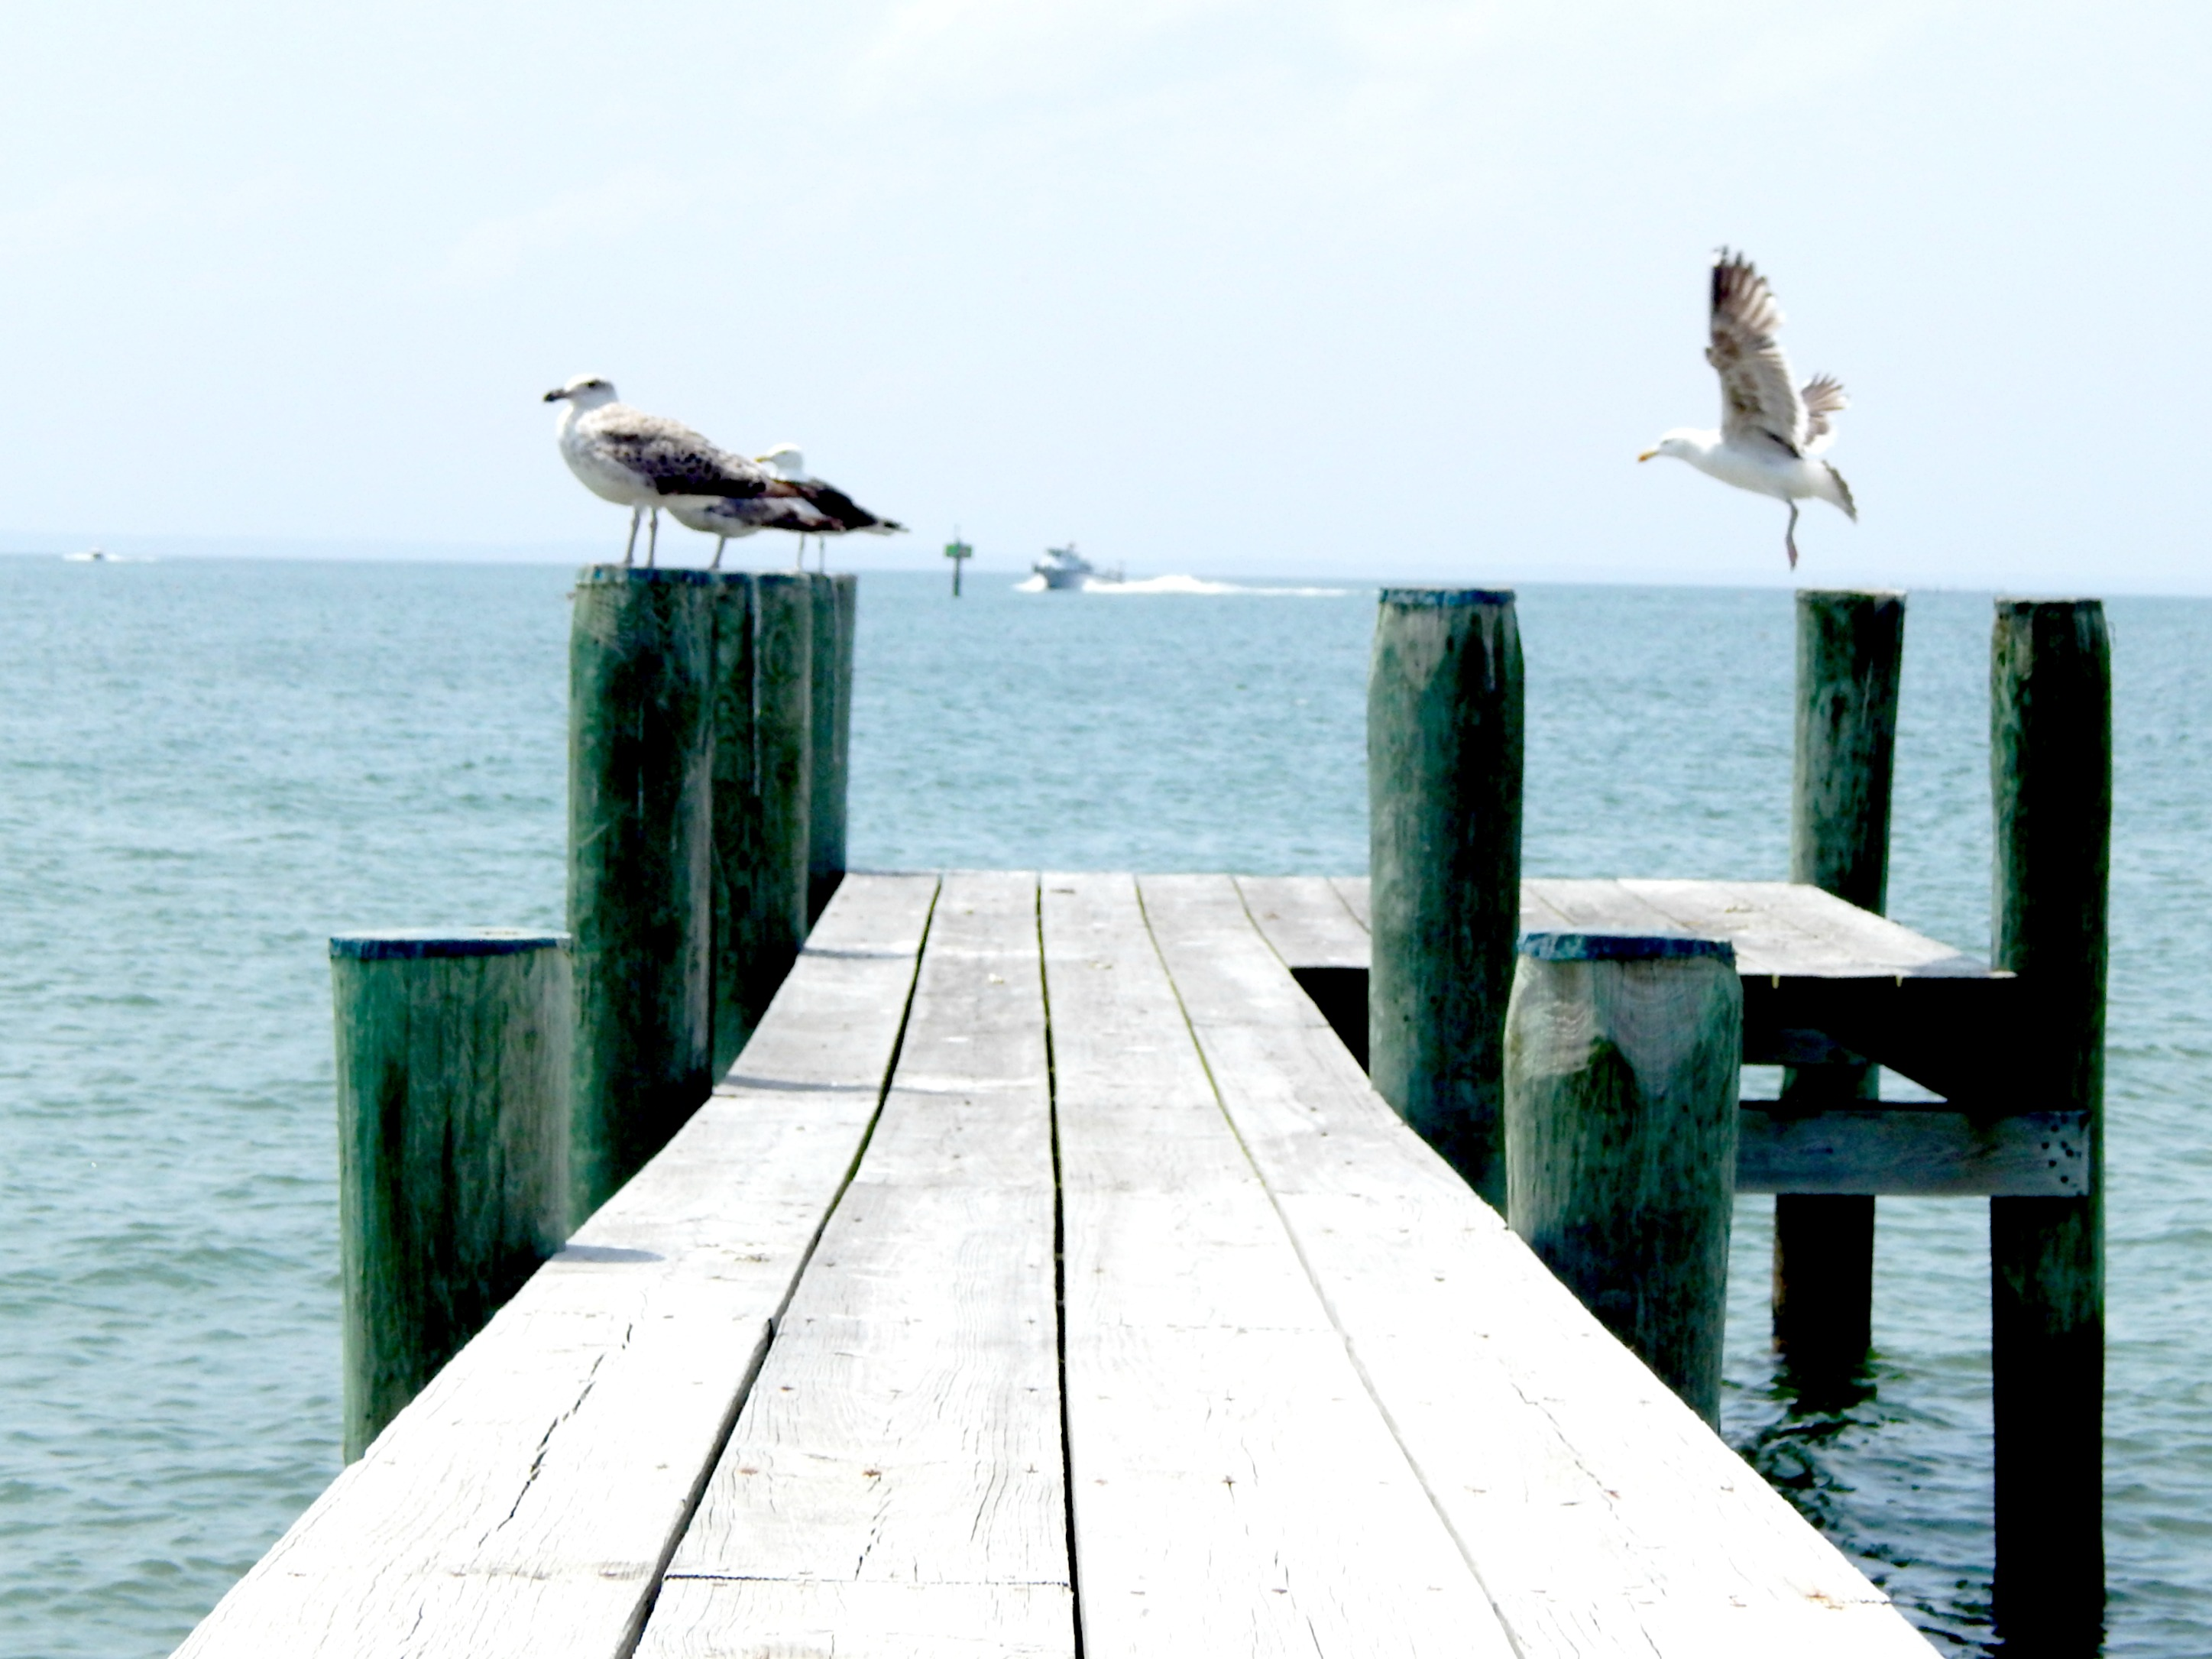 Seagulls on the dock on the Island